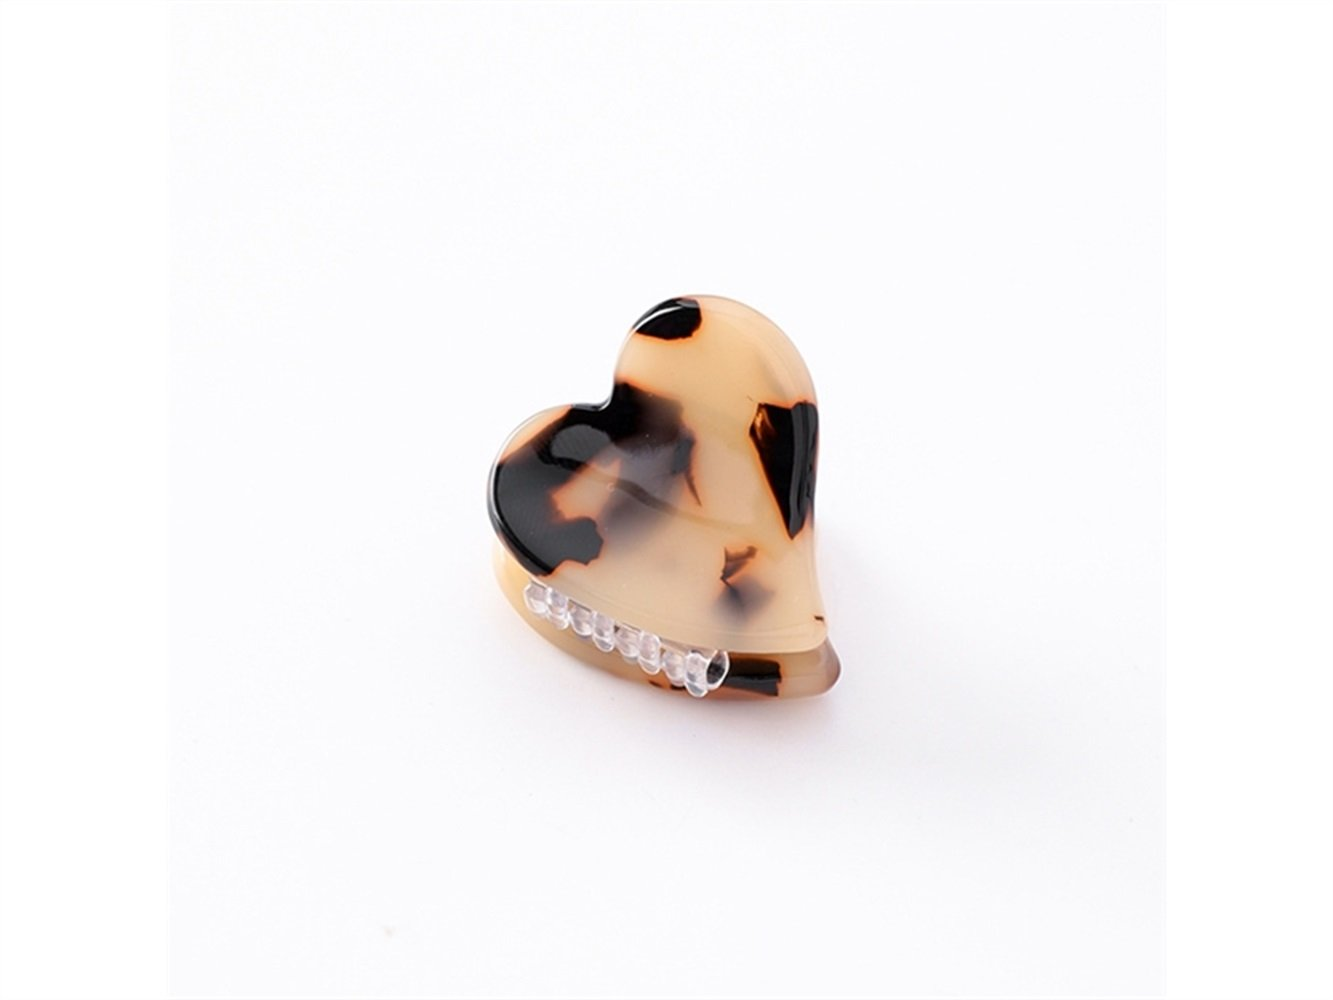 Gelaiken Love Heart-shaped Marbled Printing Mini Claw Clips Mini Jaw Clips(Leopard Print) for Different Hair Style